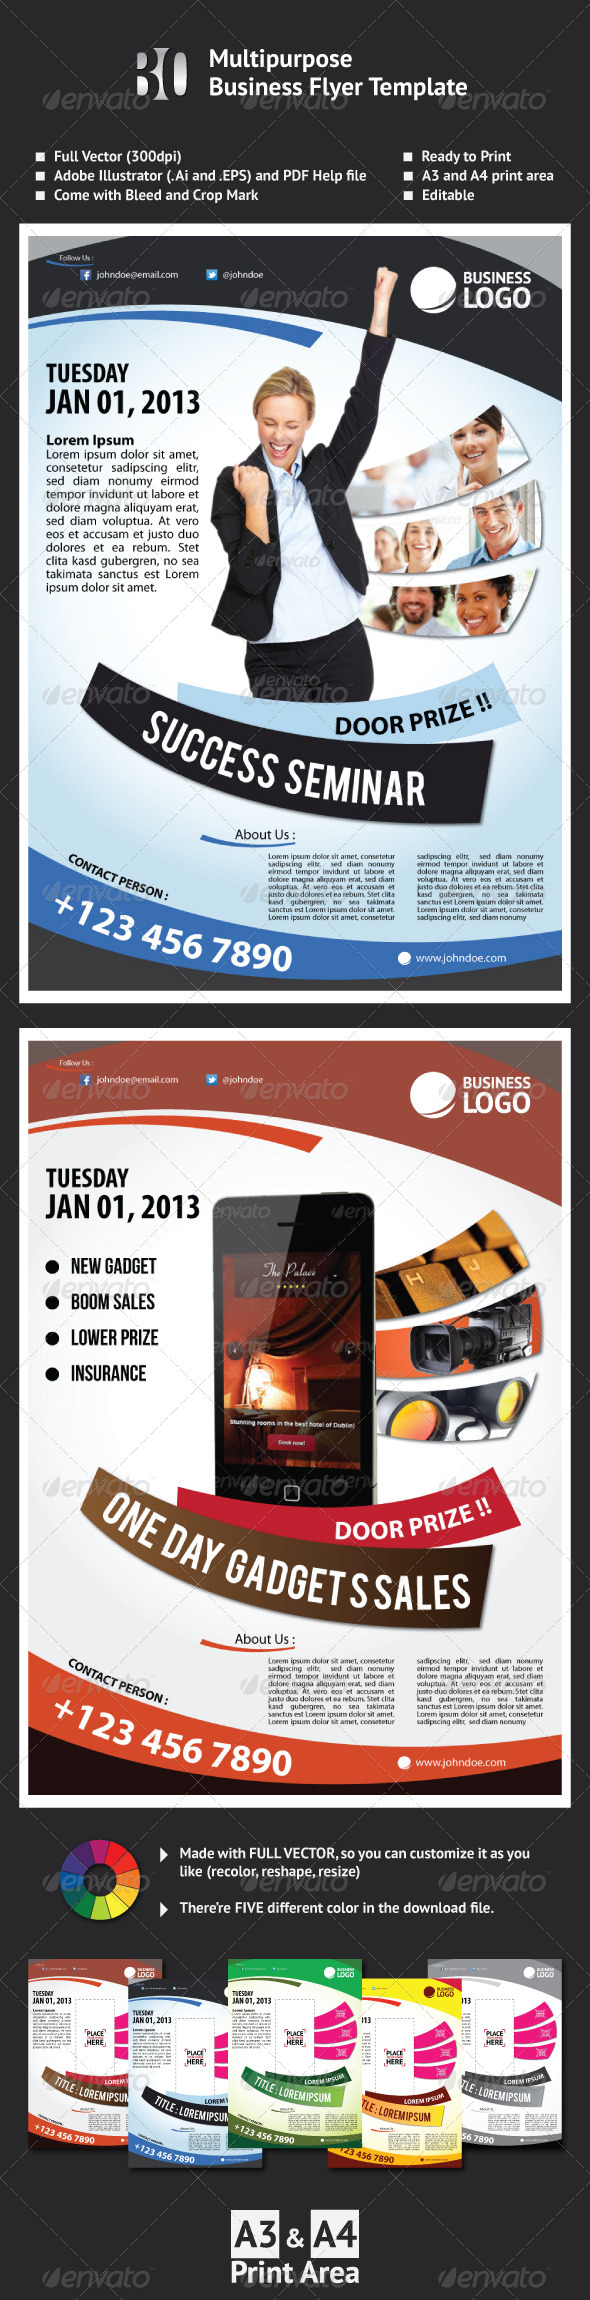 GraphicRiver Multipurpose Business Flyer Template 2762278